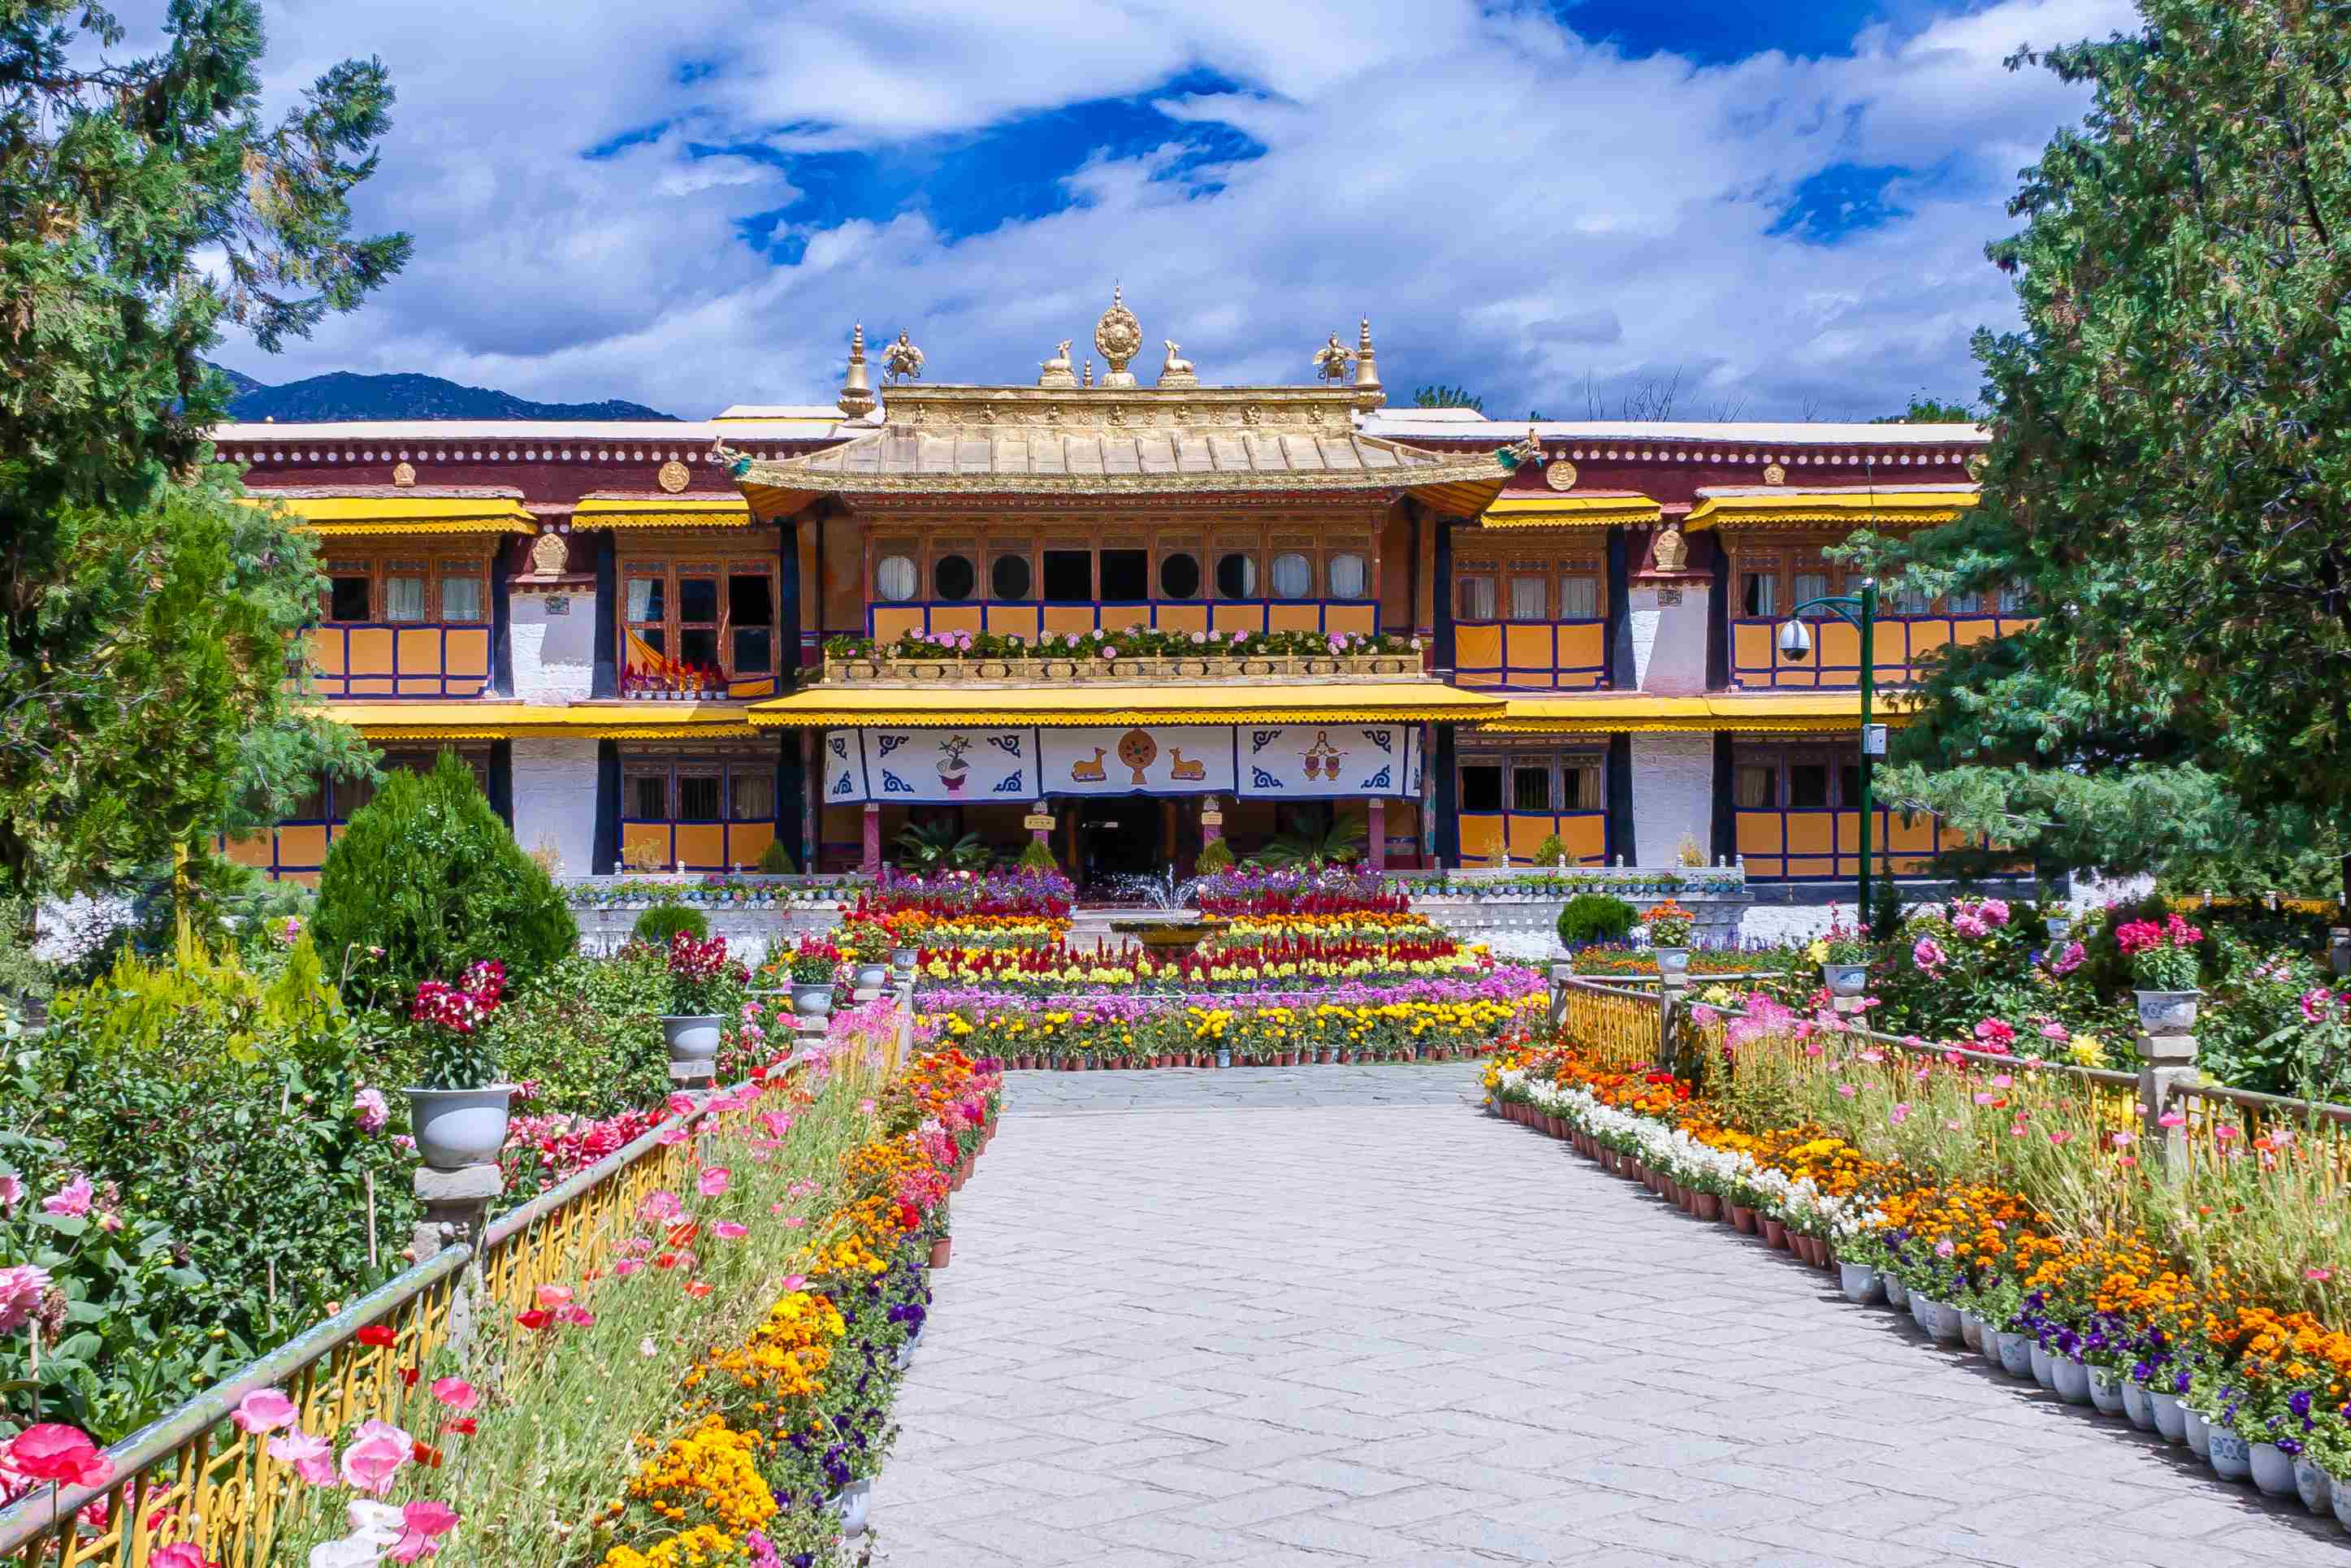 Norbulingka The Summer Residence of Dalai Lama in Lhasa